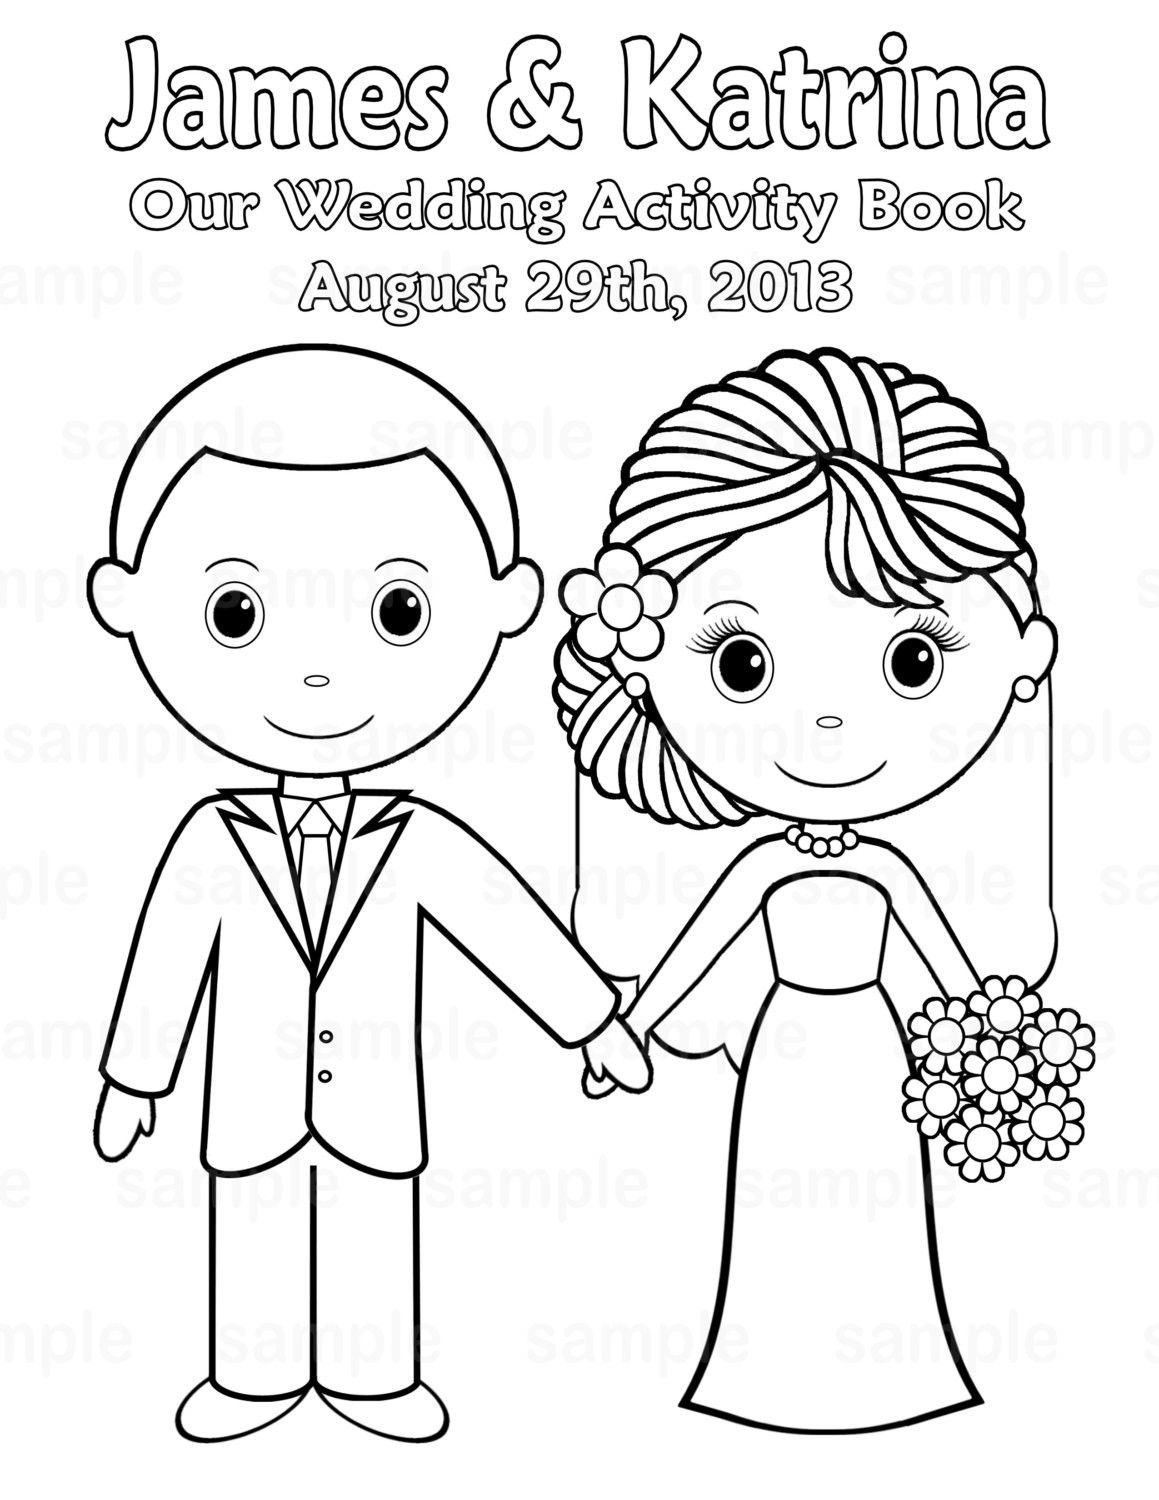 wedding activity book coloring pages | Free Coloring Pages